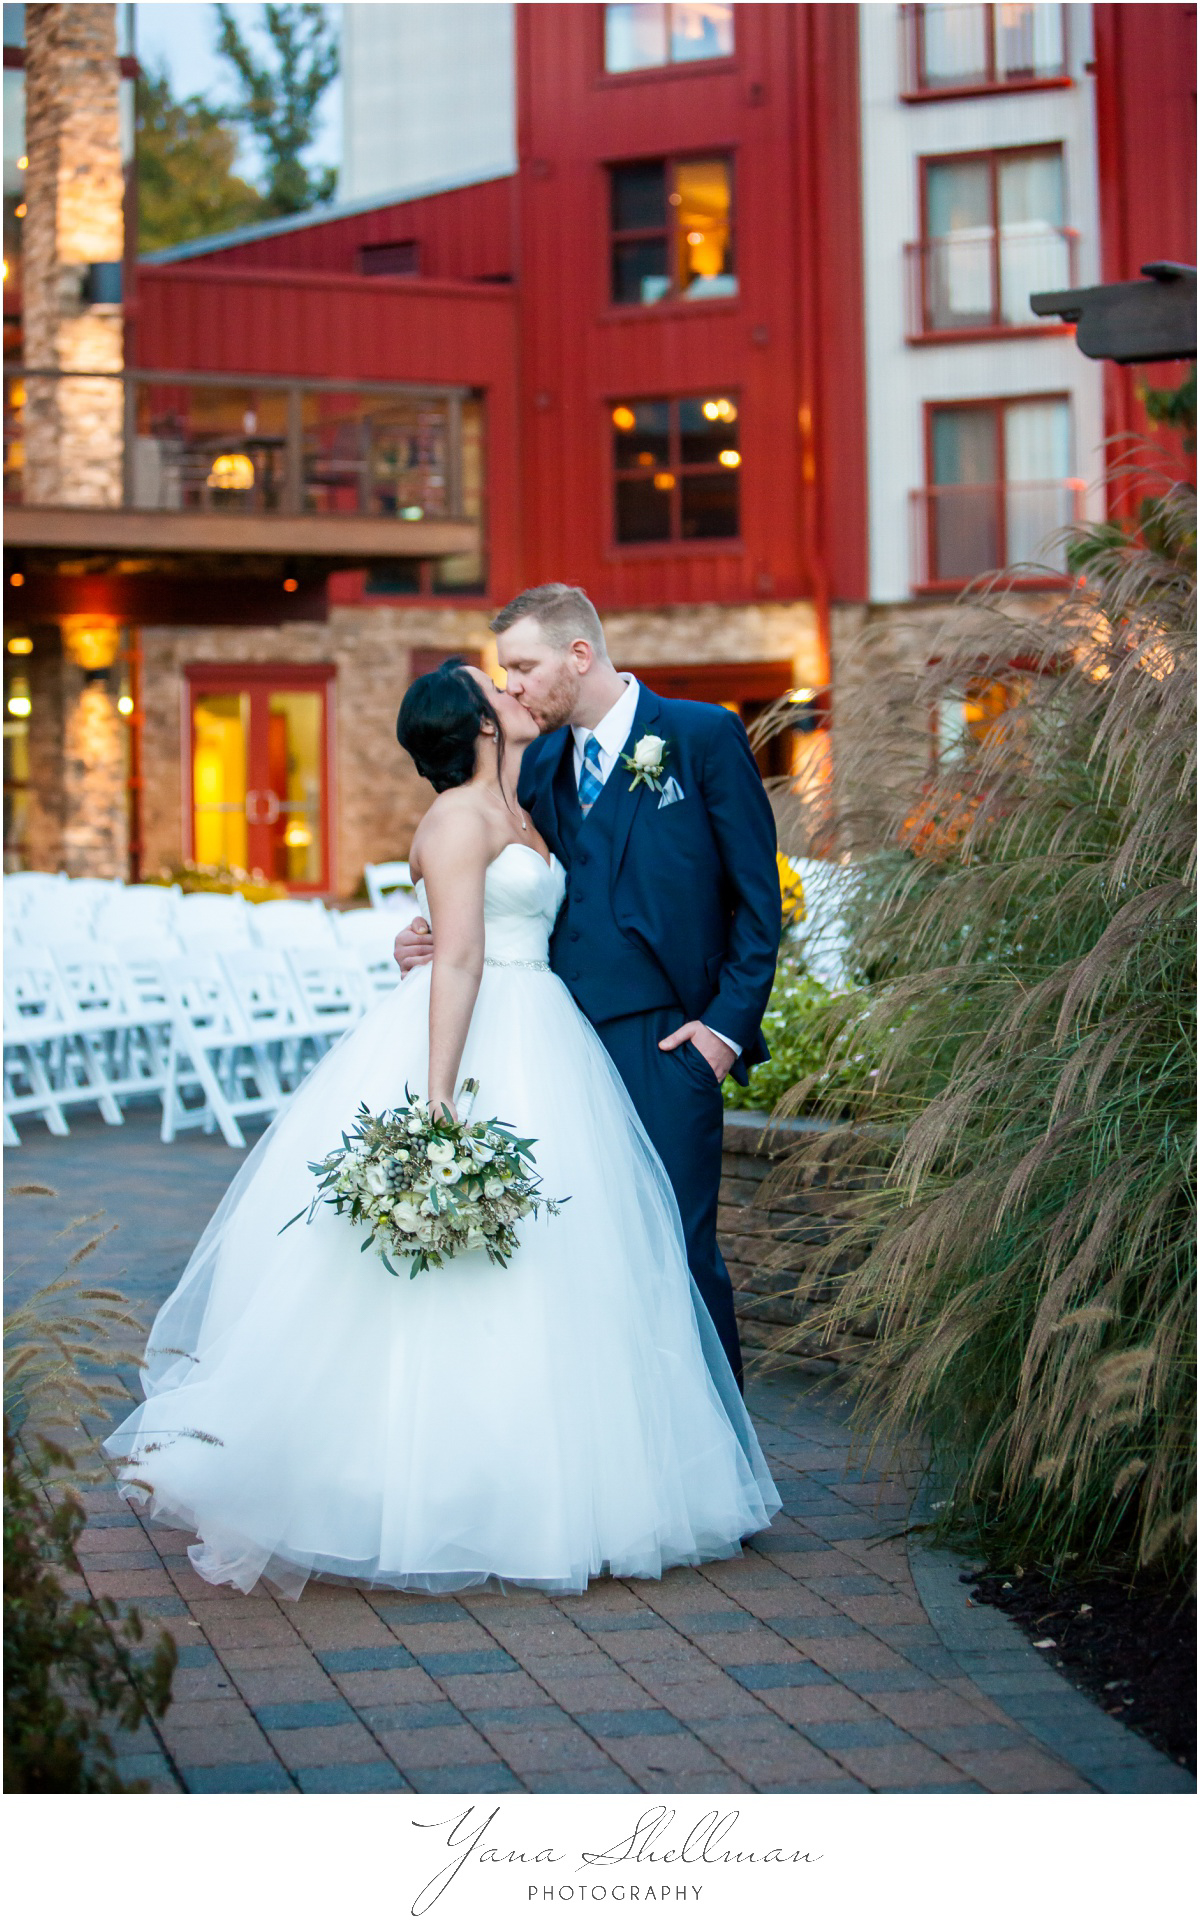 Bear Creek Mountain Resort Wedding Photos by the best West Chester Wedding Photographers - Tiffany+Mike Wedding Photos